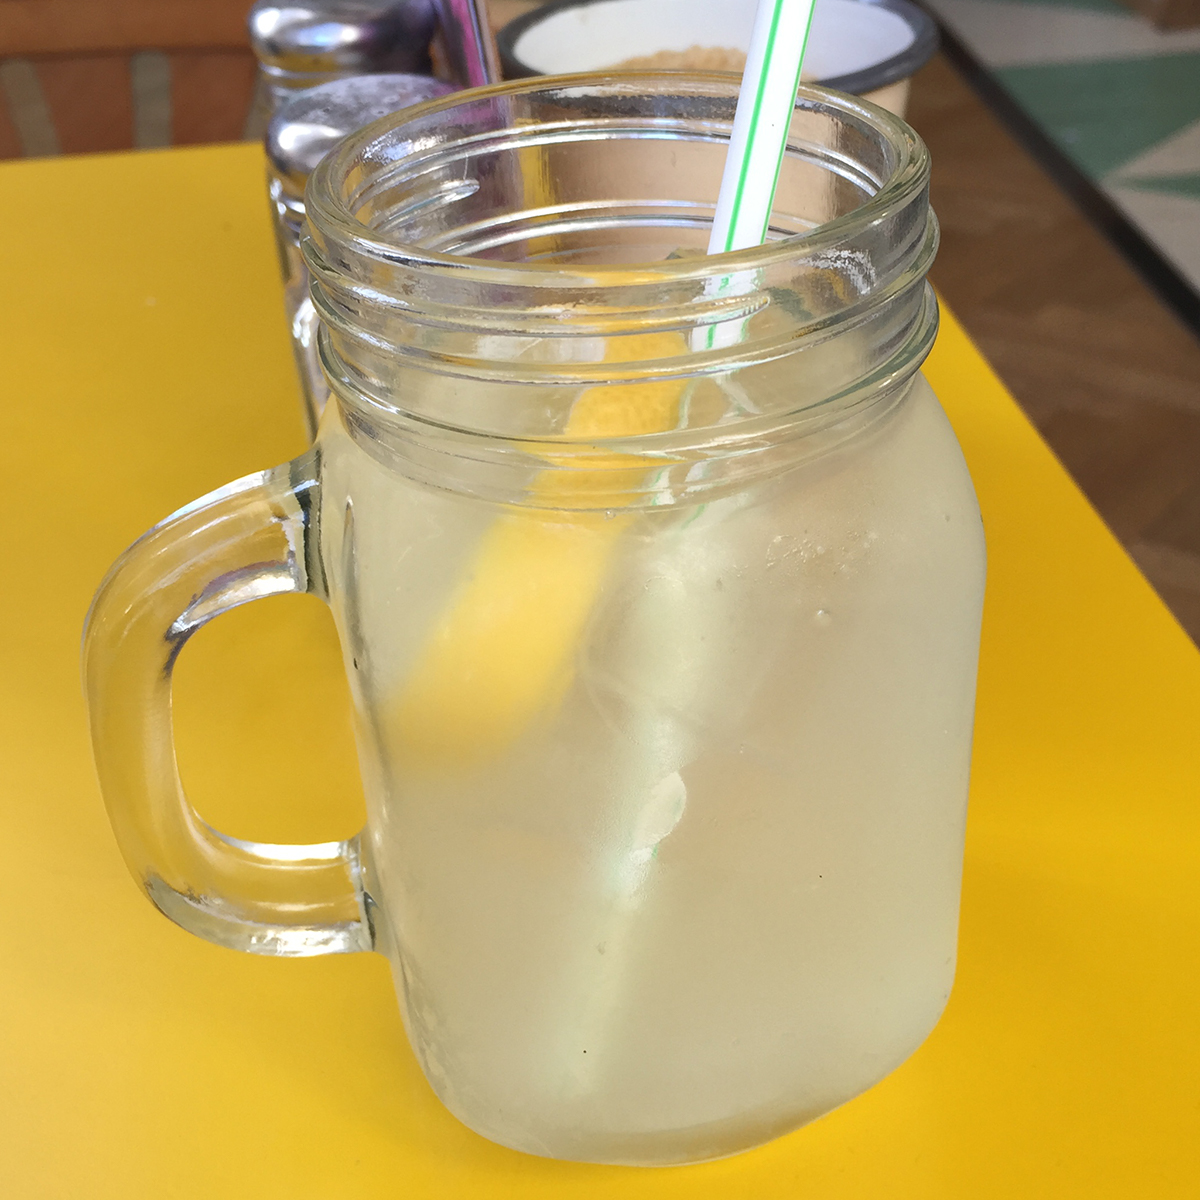 Home made lemonade